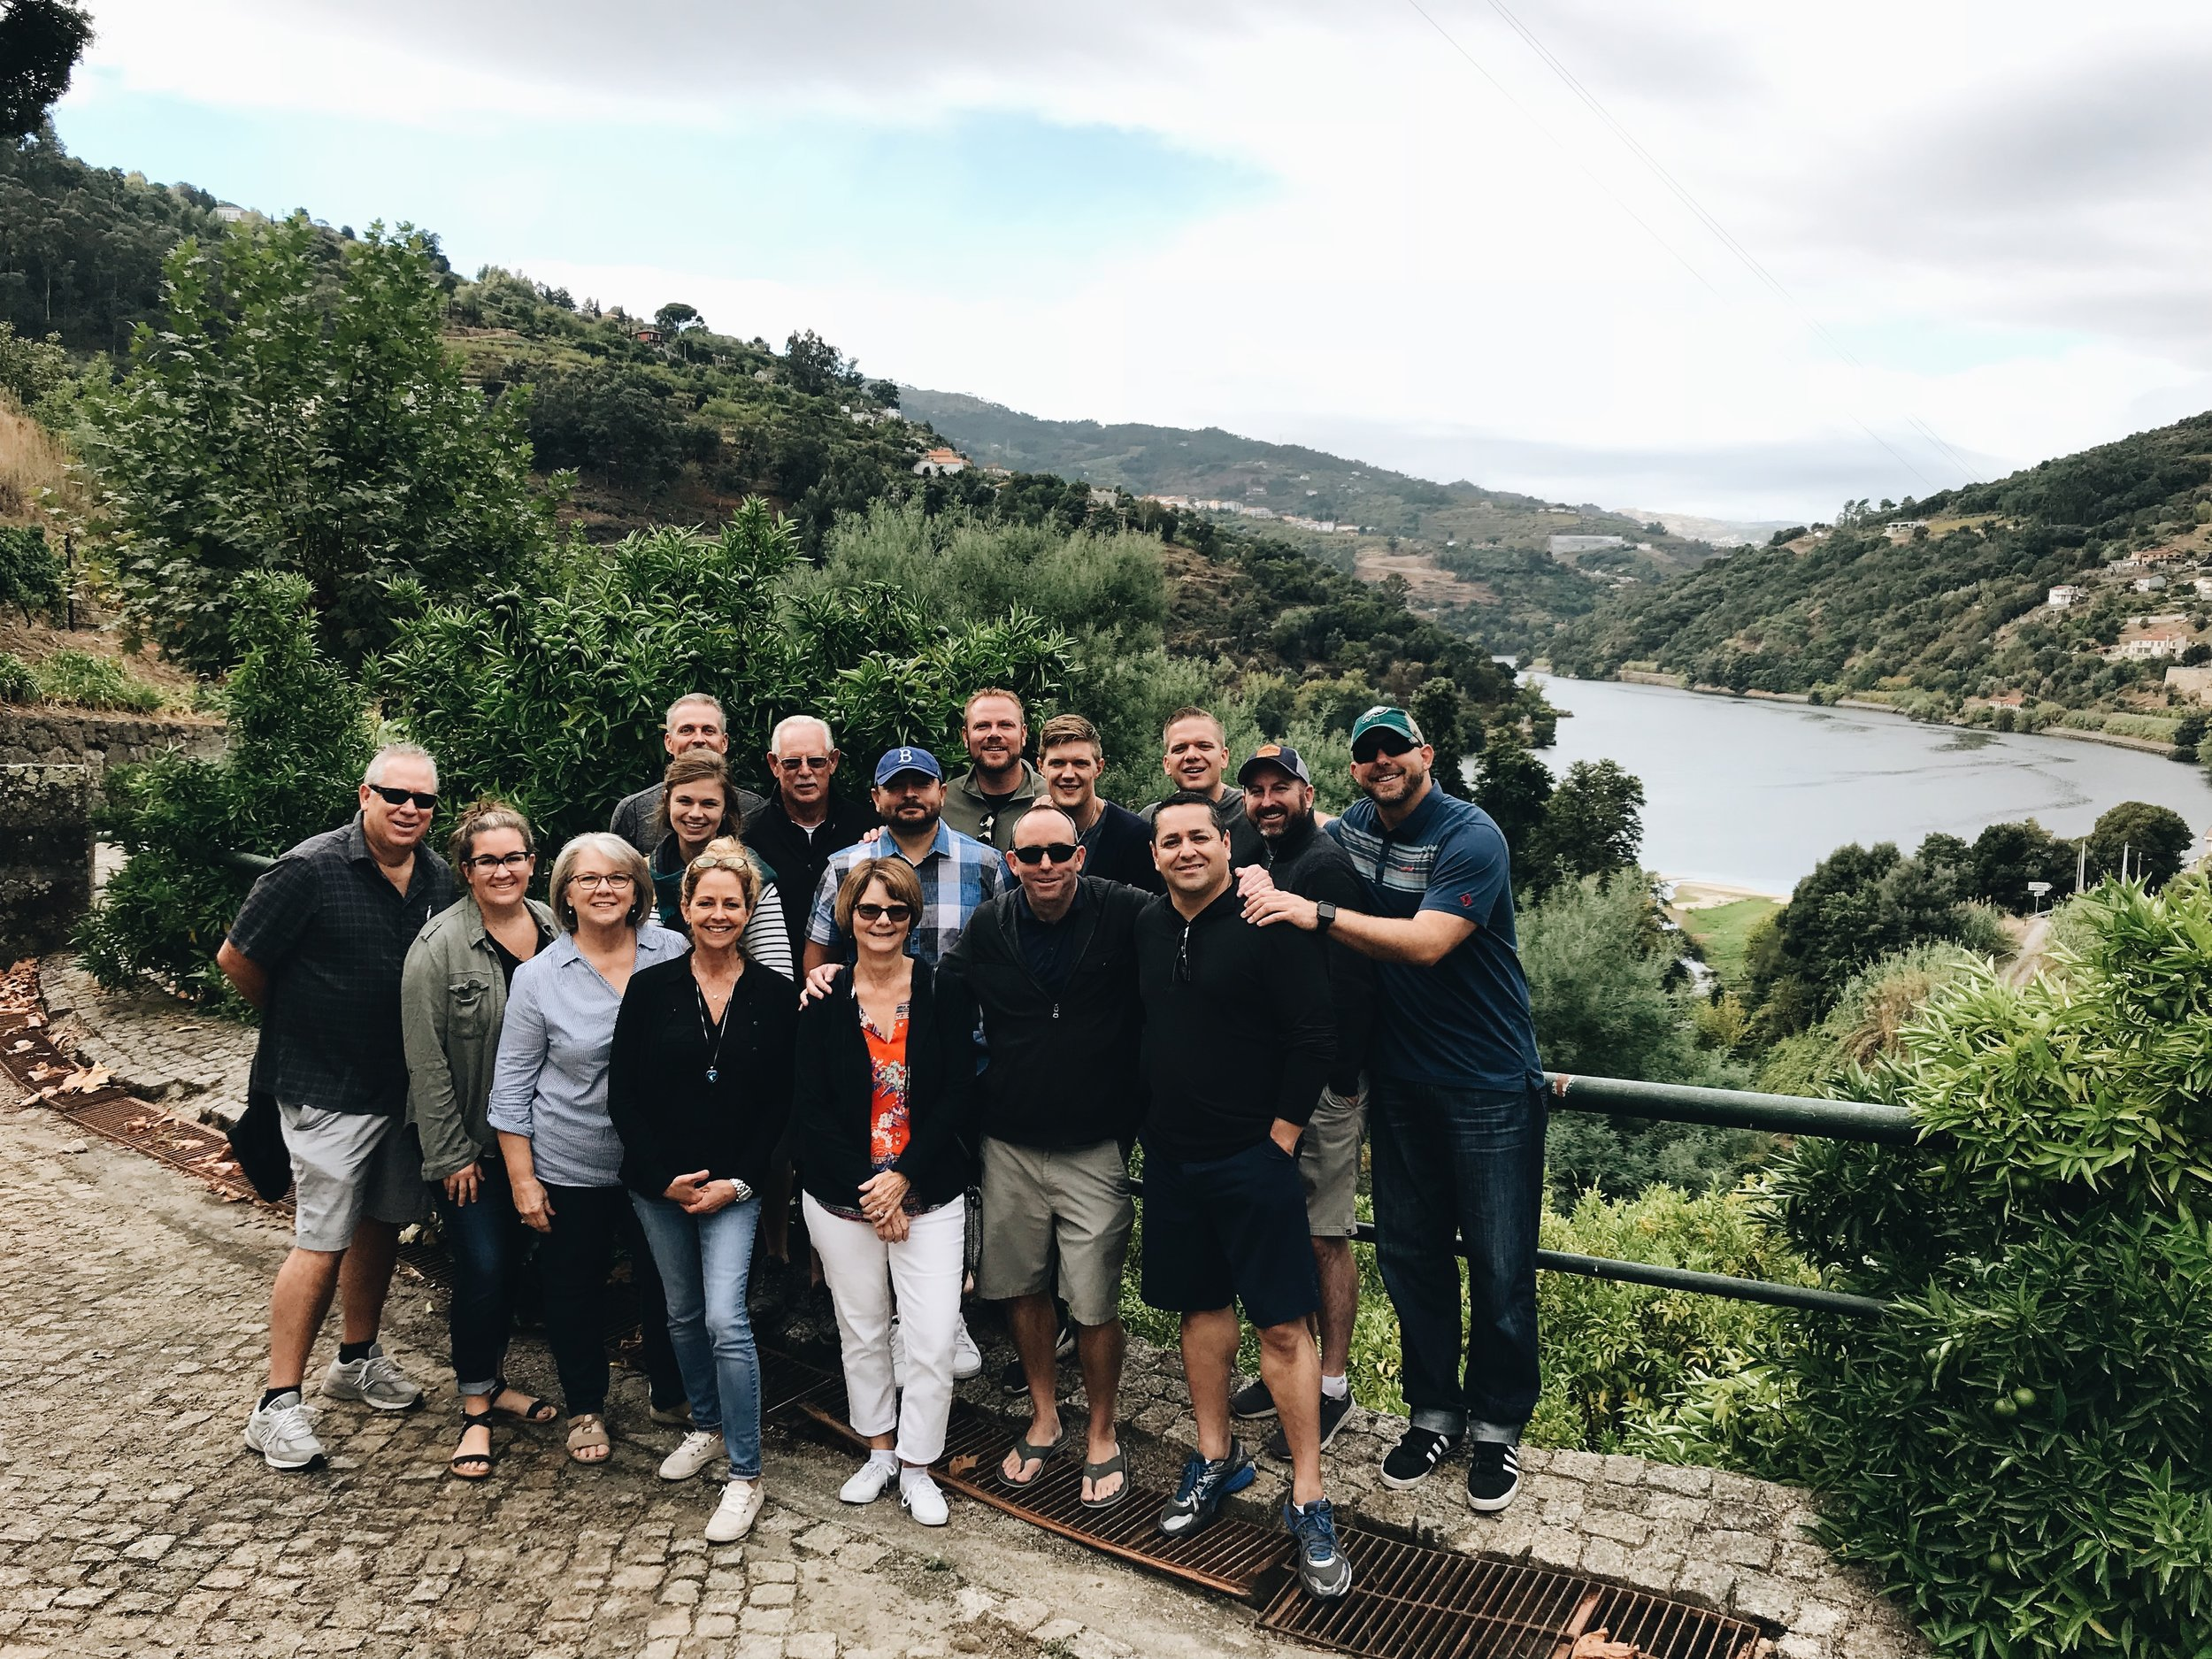 October Fall Trip 2018 attendees pose in front of the Douro river outside Quinta da Ermida in northern Portugal.